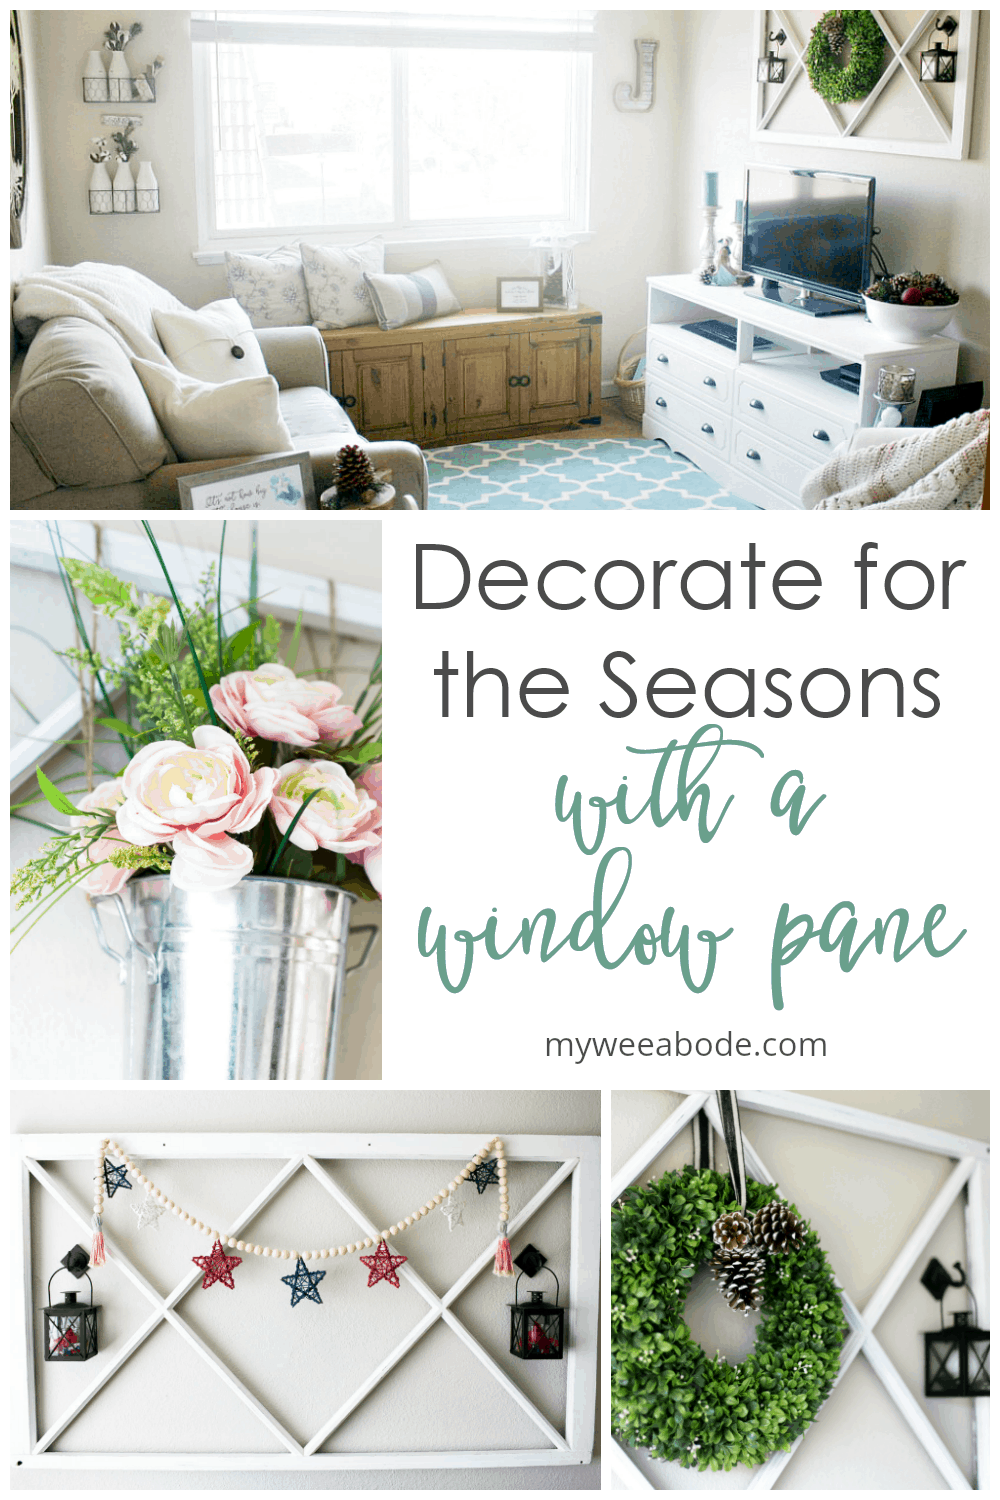 how to style a decorative window pane for all seasons various photos of window pane and decor